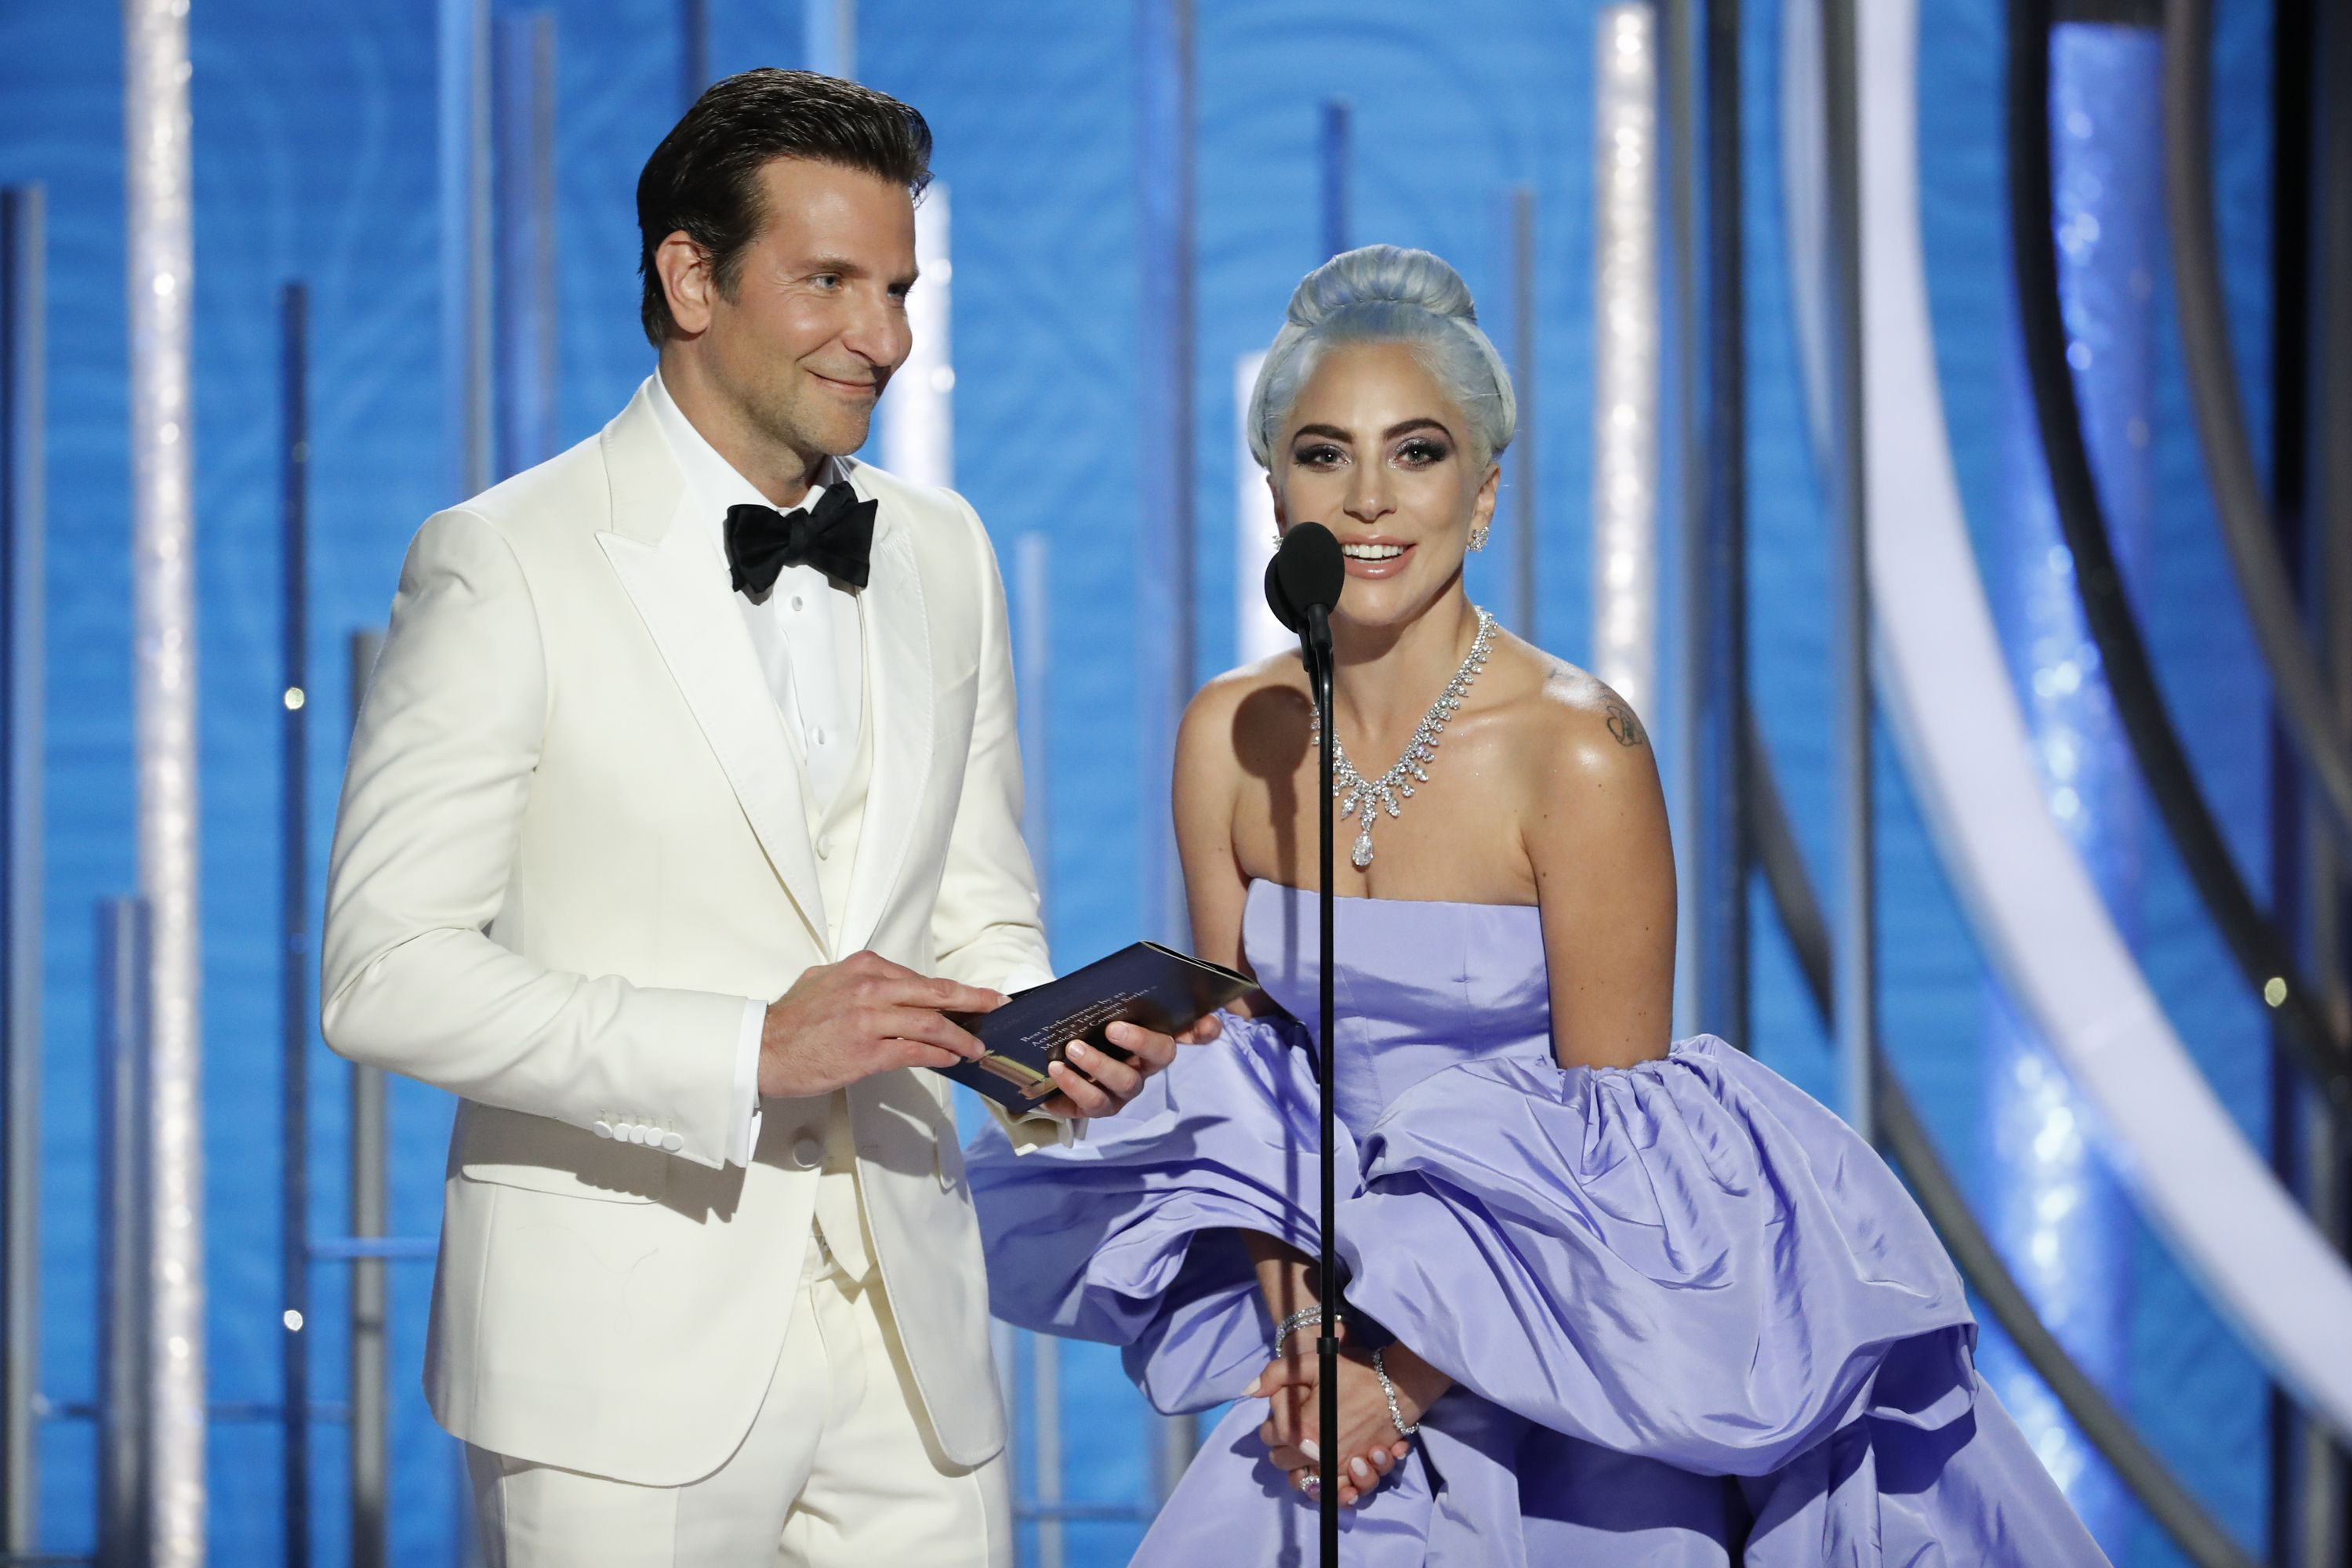 There's a Rumor That Lady Gaga and Bradley Cooper Will Reunite at a Festival